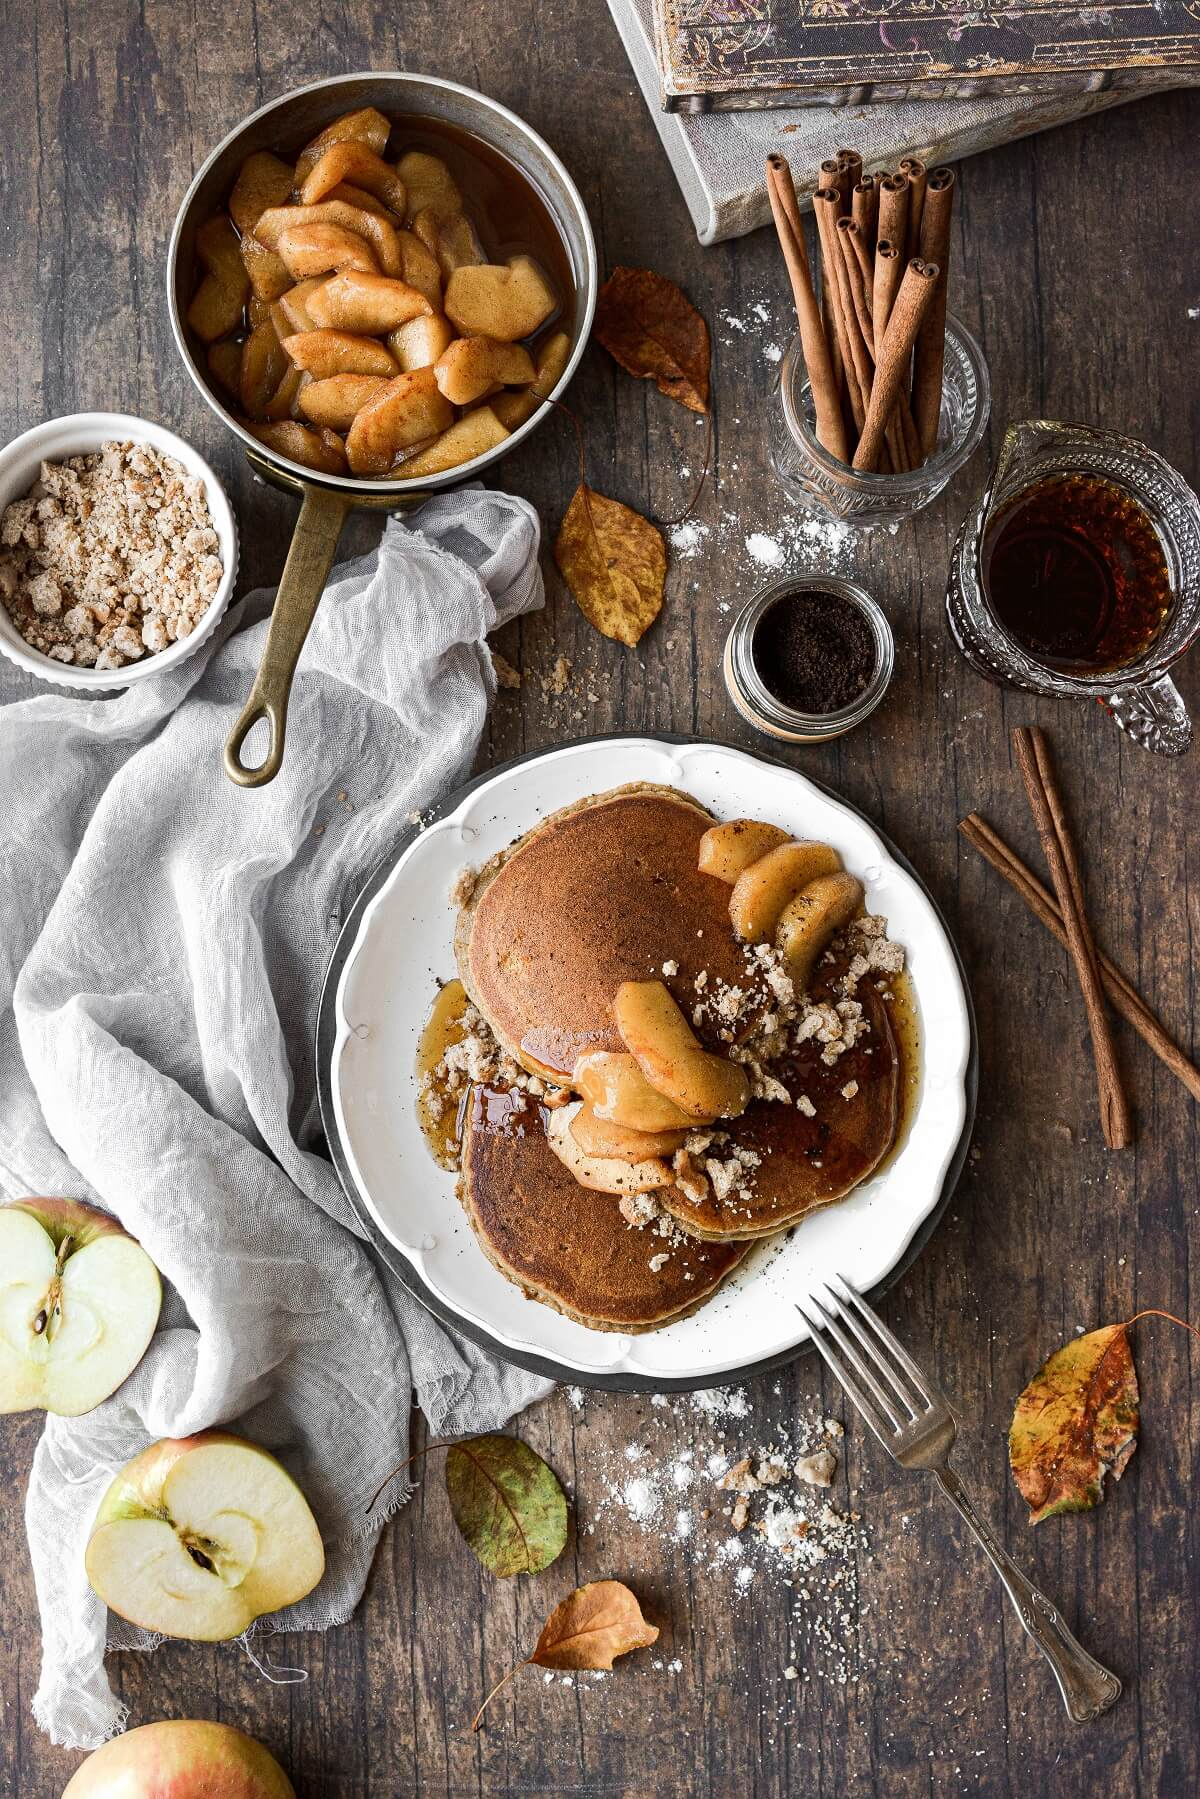 Apple cider pancakes on a plate, surrounded by apples, syrup and cinnamon sticks.